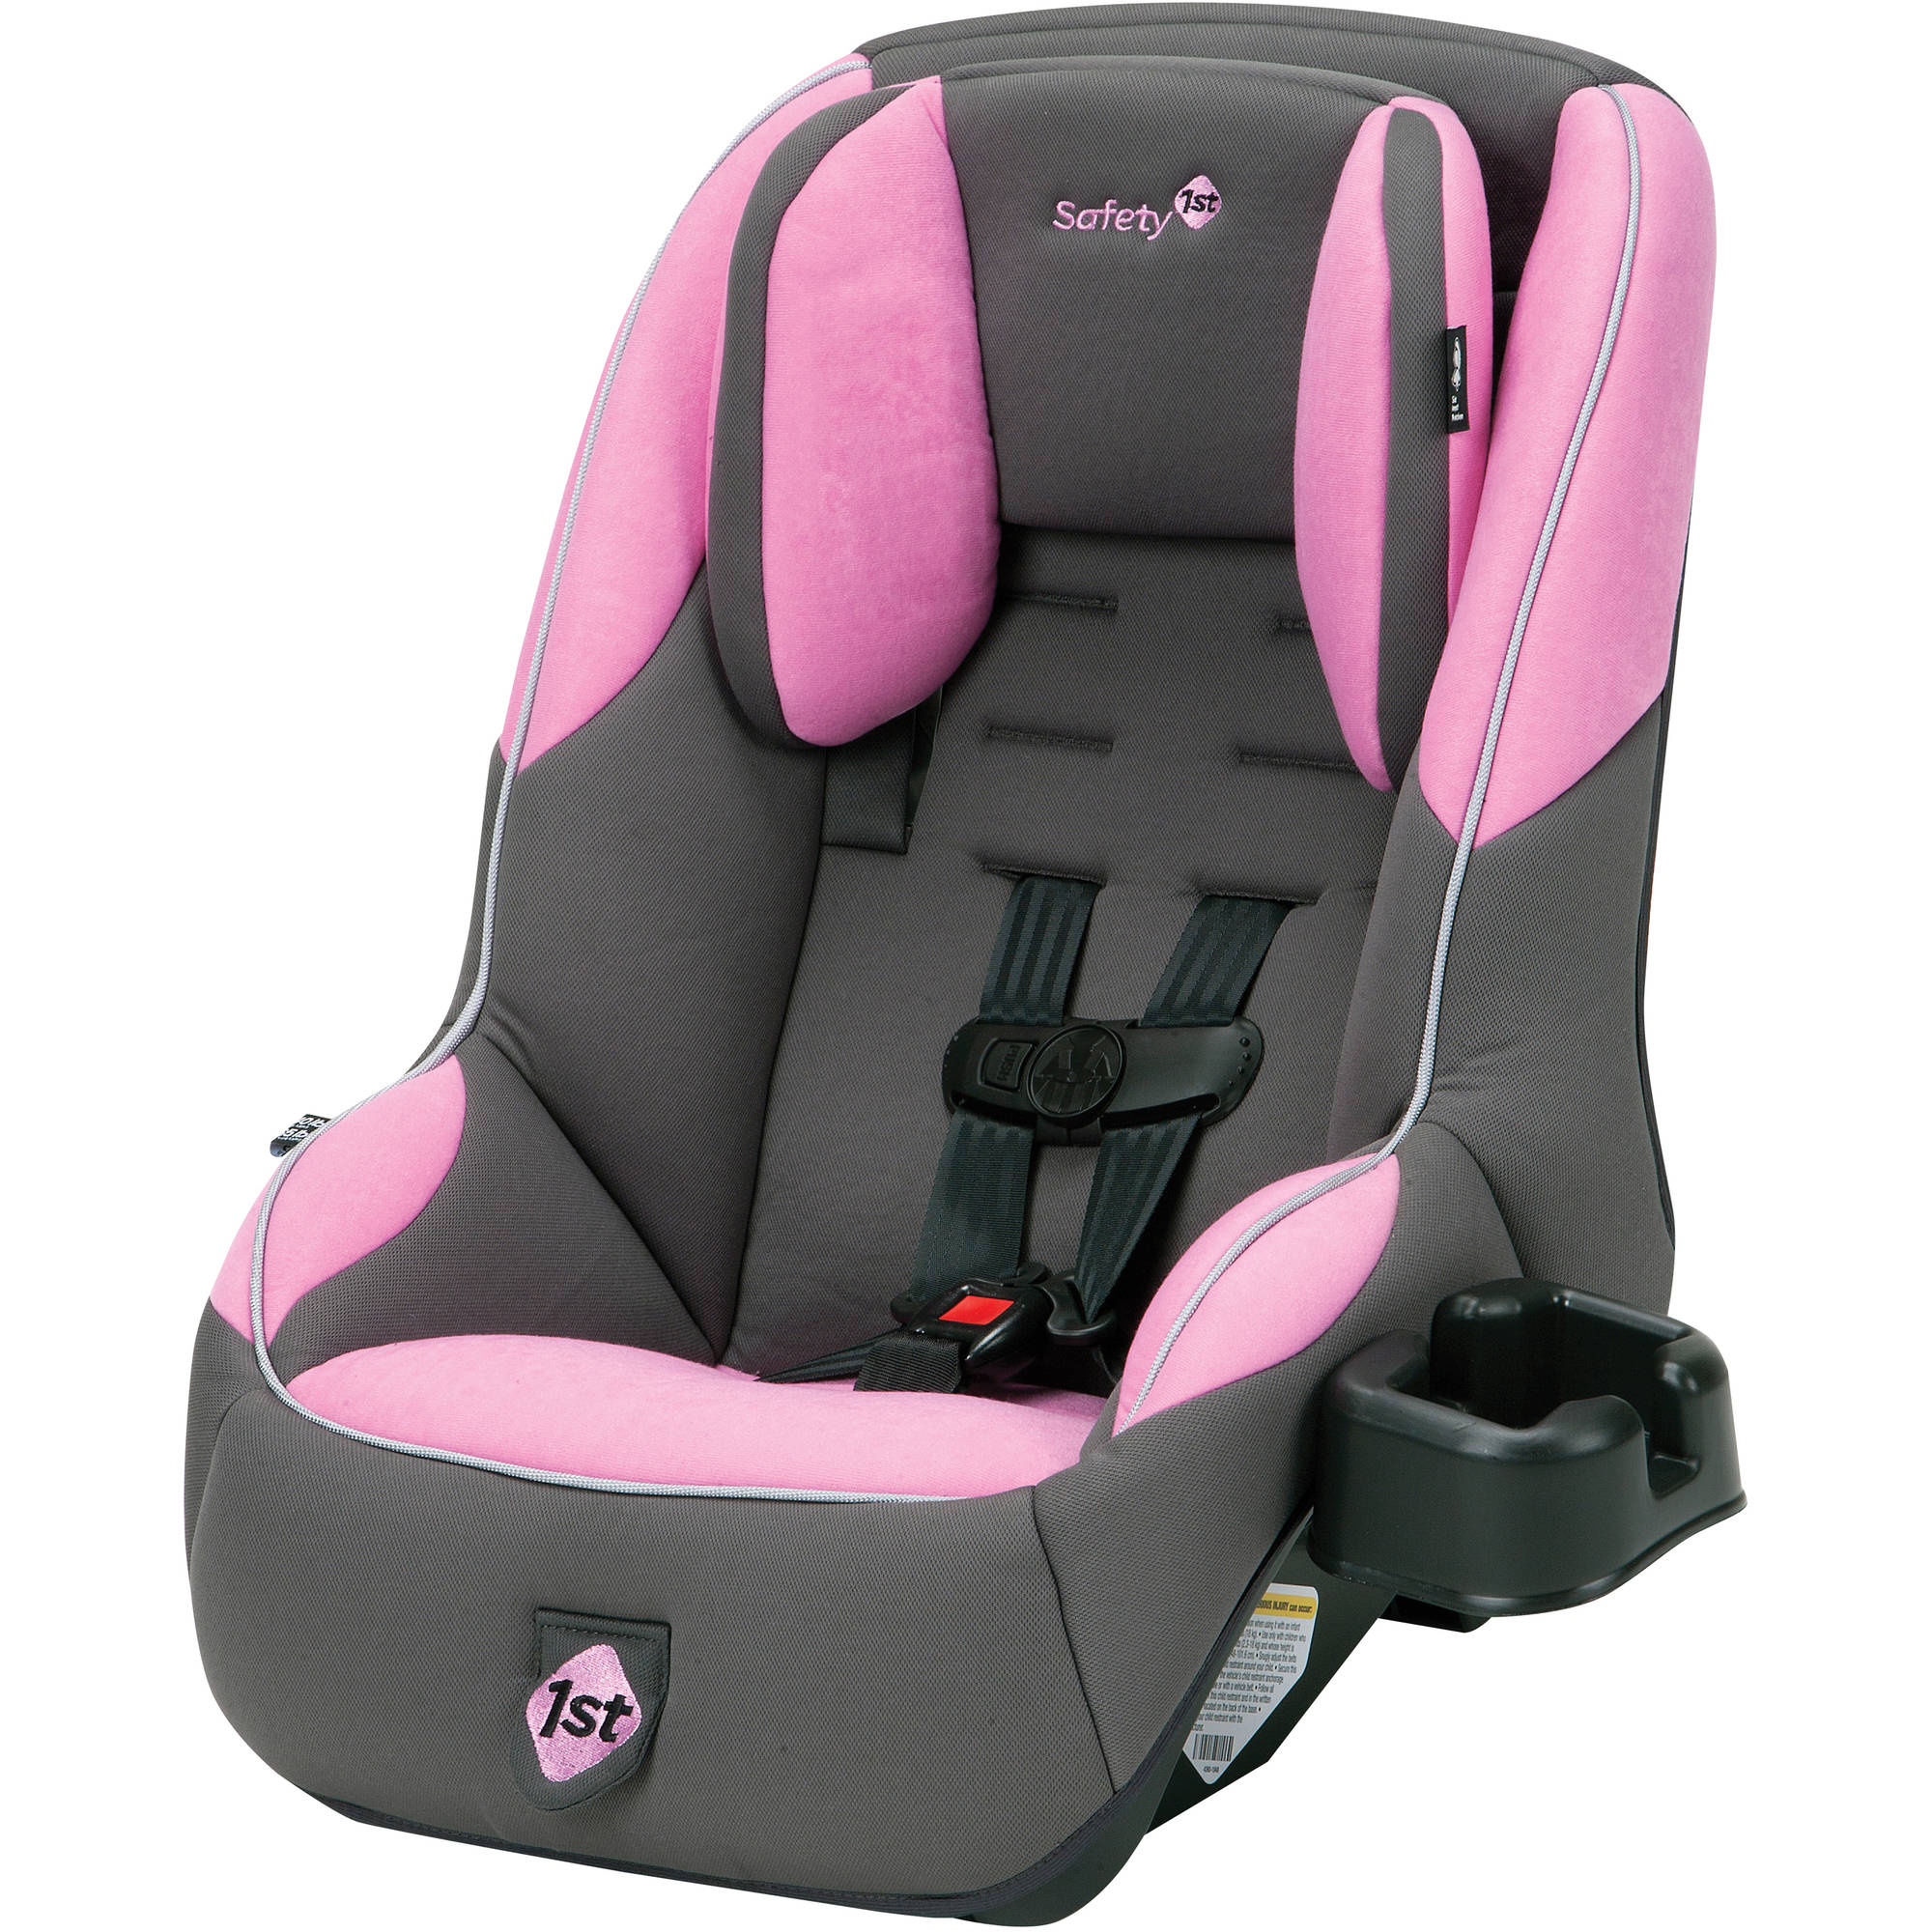 Graco Fit4Me 65 Convertible Car Seat, Plus - Walmart.com